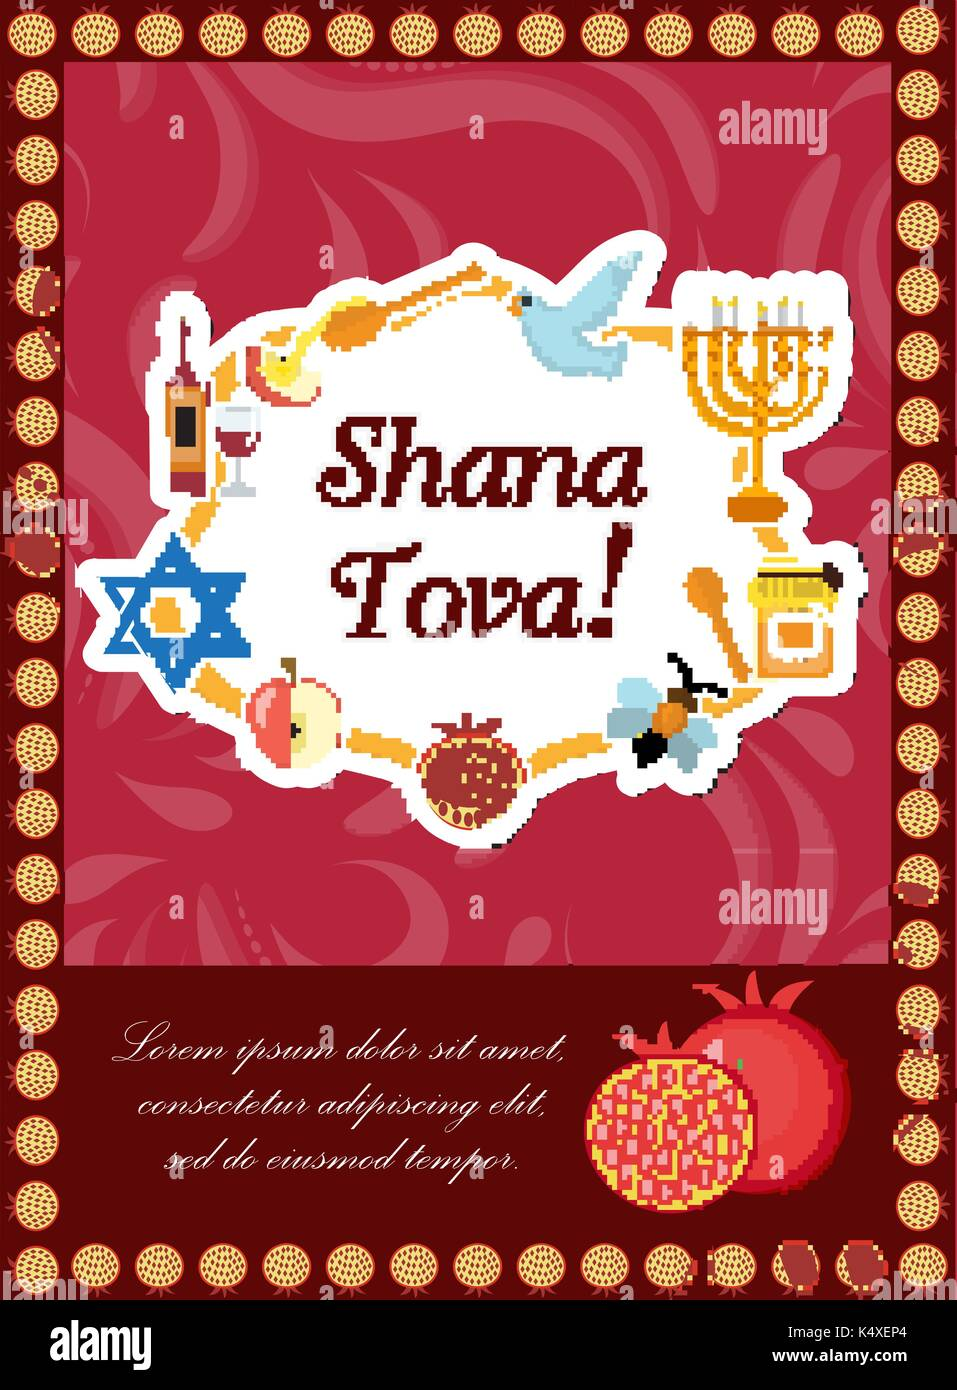 Shana Tova Stock Photos Shana Tova Stock Images Alamy